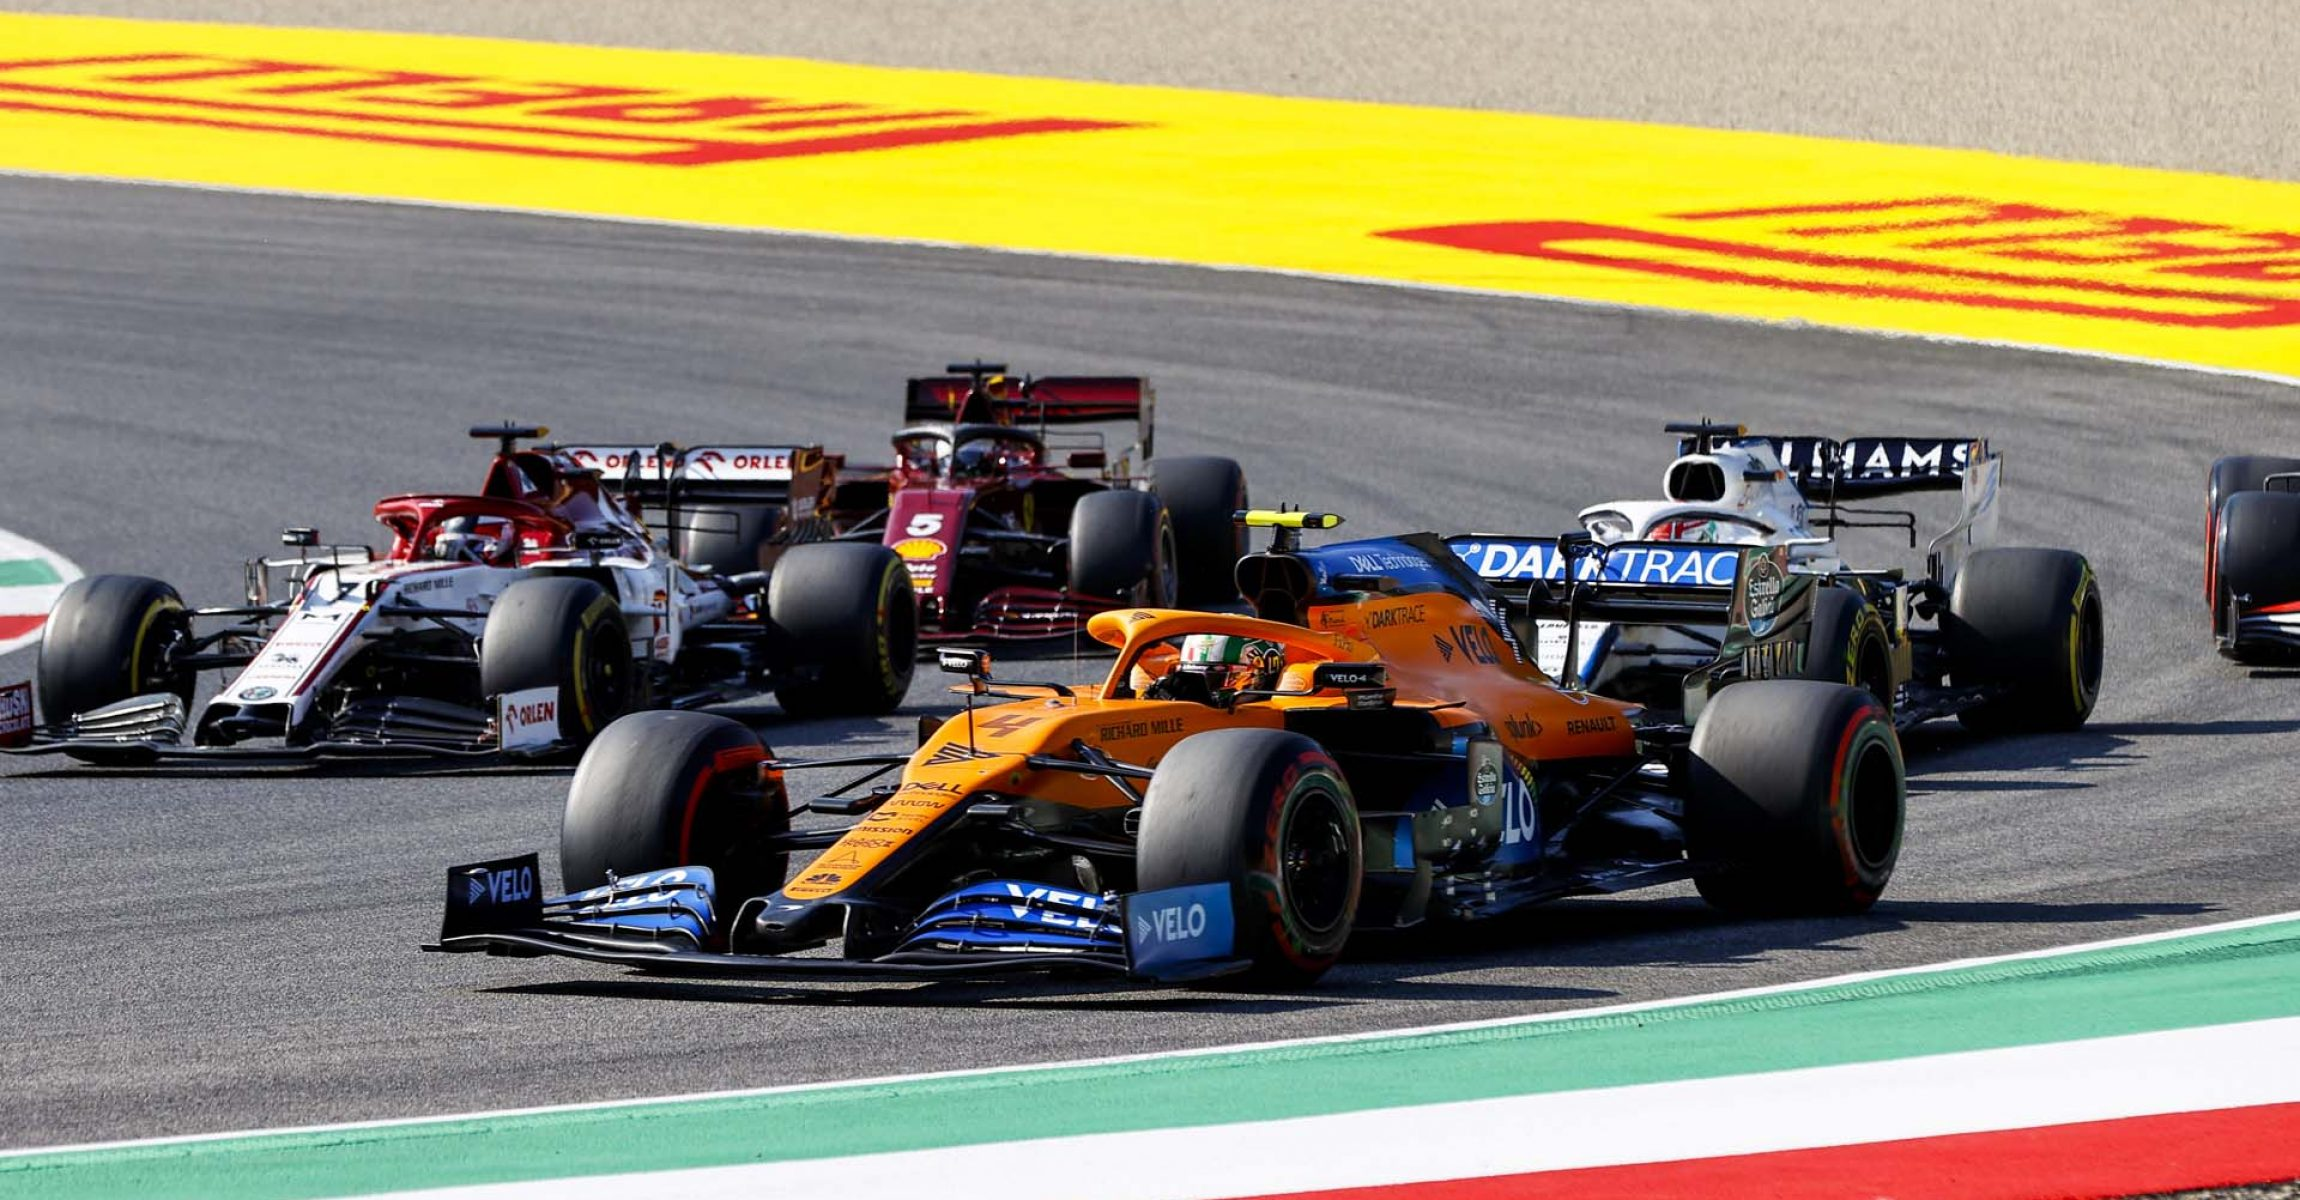 Lando Norris, McLaren MCL35, leads Kimi Raikkonen, Alfa Romeo Racing C39, George Russell, Williams FW43, and Sebastian Vettel, Ferrari SF1000 in a corner